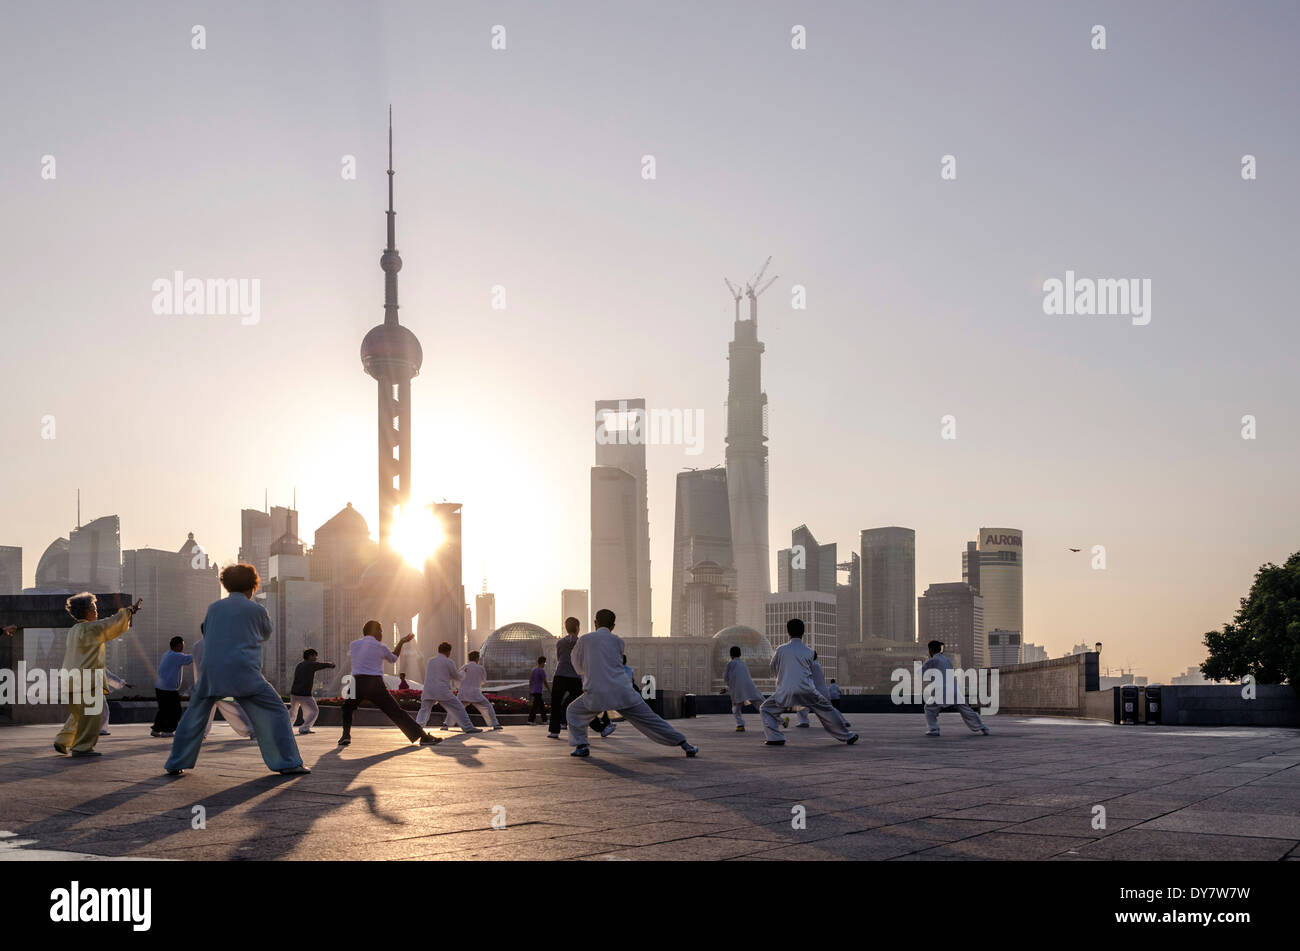 Tai Chi at the Bund, Shanghai, China - Stock Image